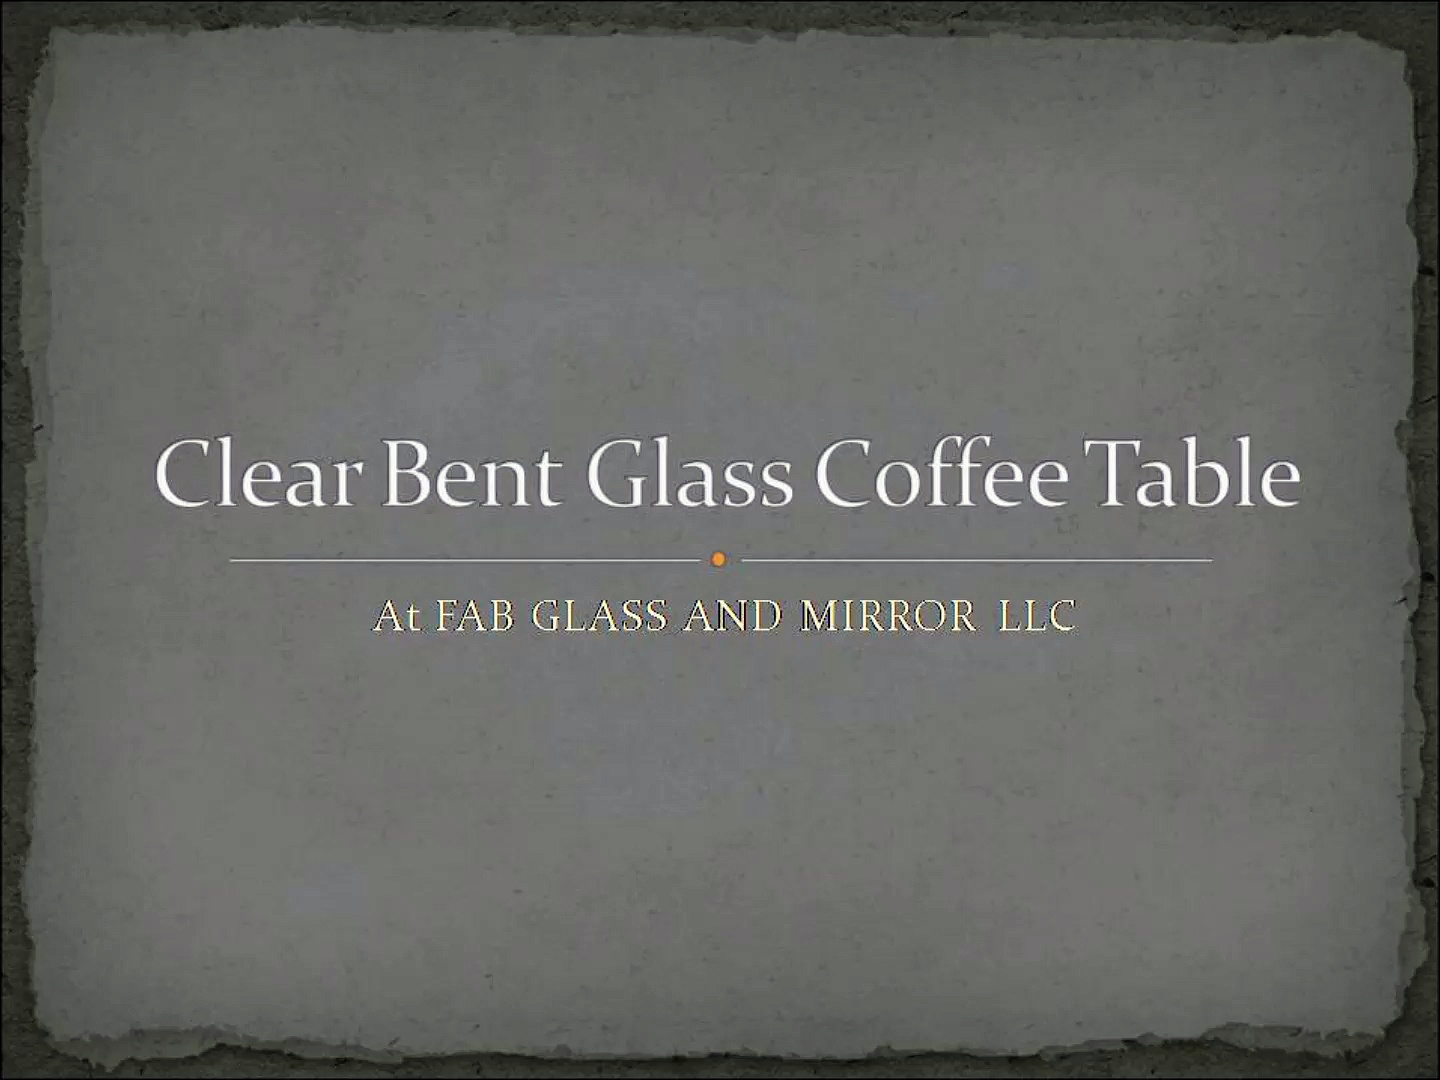 Get Clear Bent Glass Coffee Table